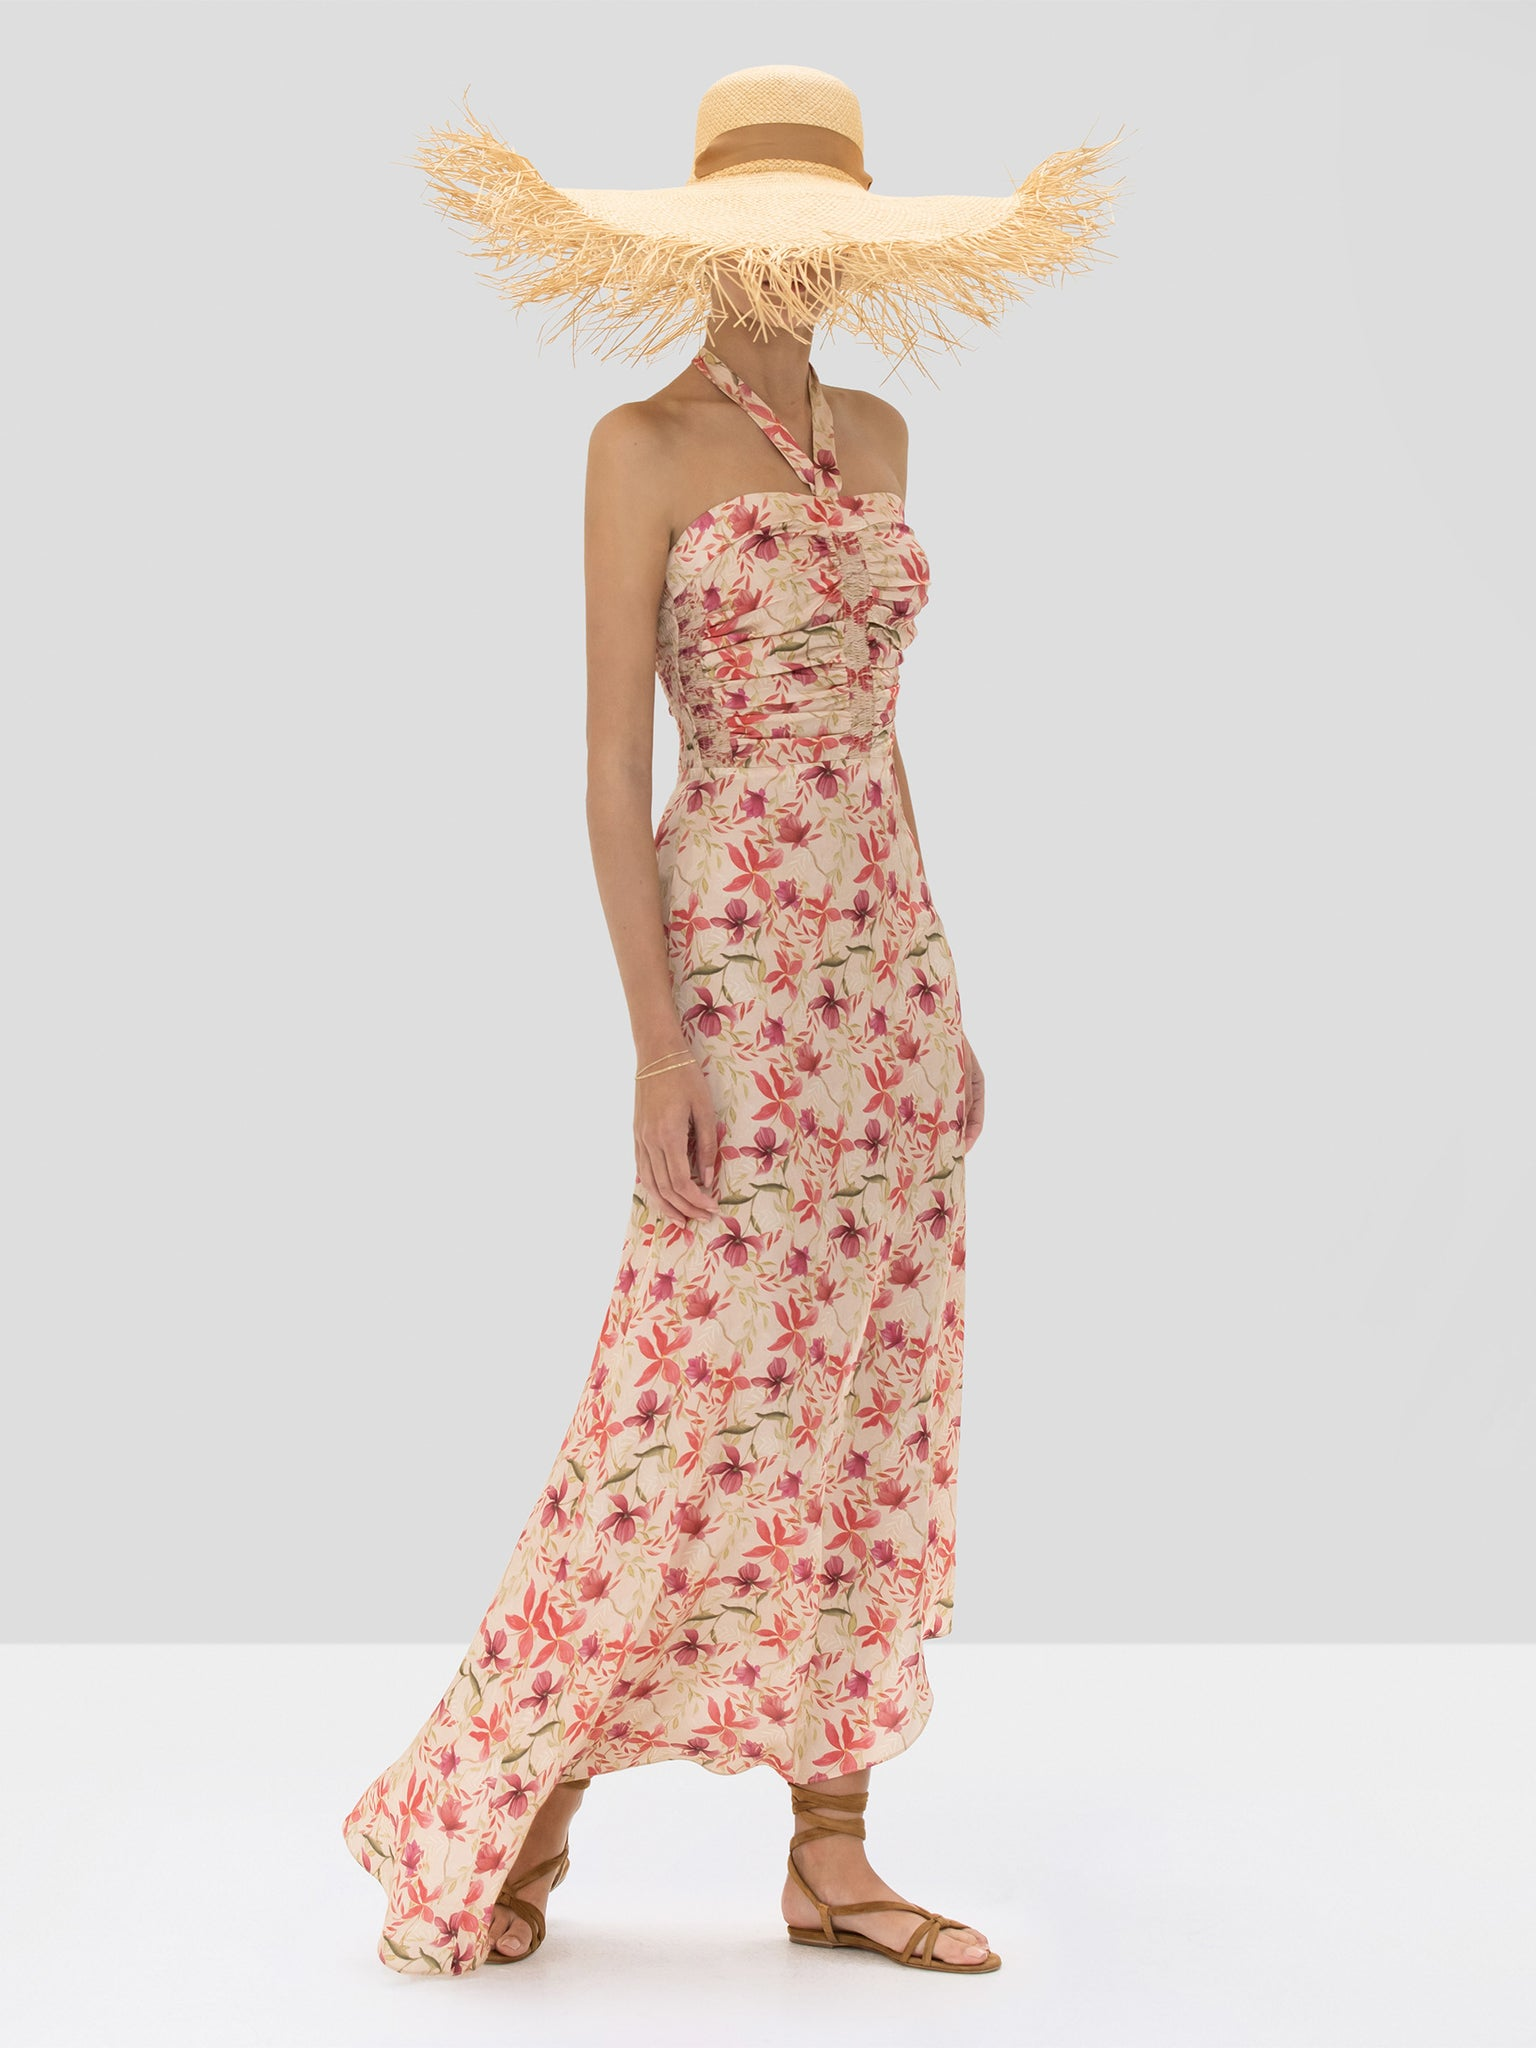 Alexis Tahanie Dress in Wild Orchid Rose from the Spring Summer 2020 Ready To Wear Collection